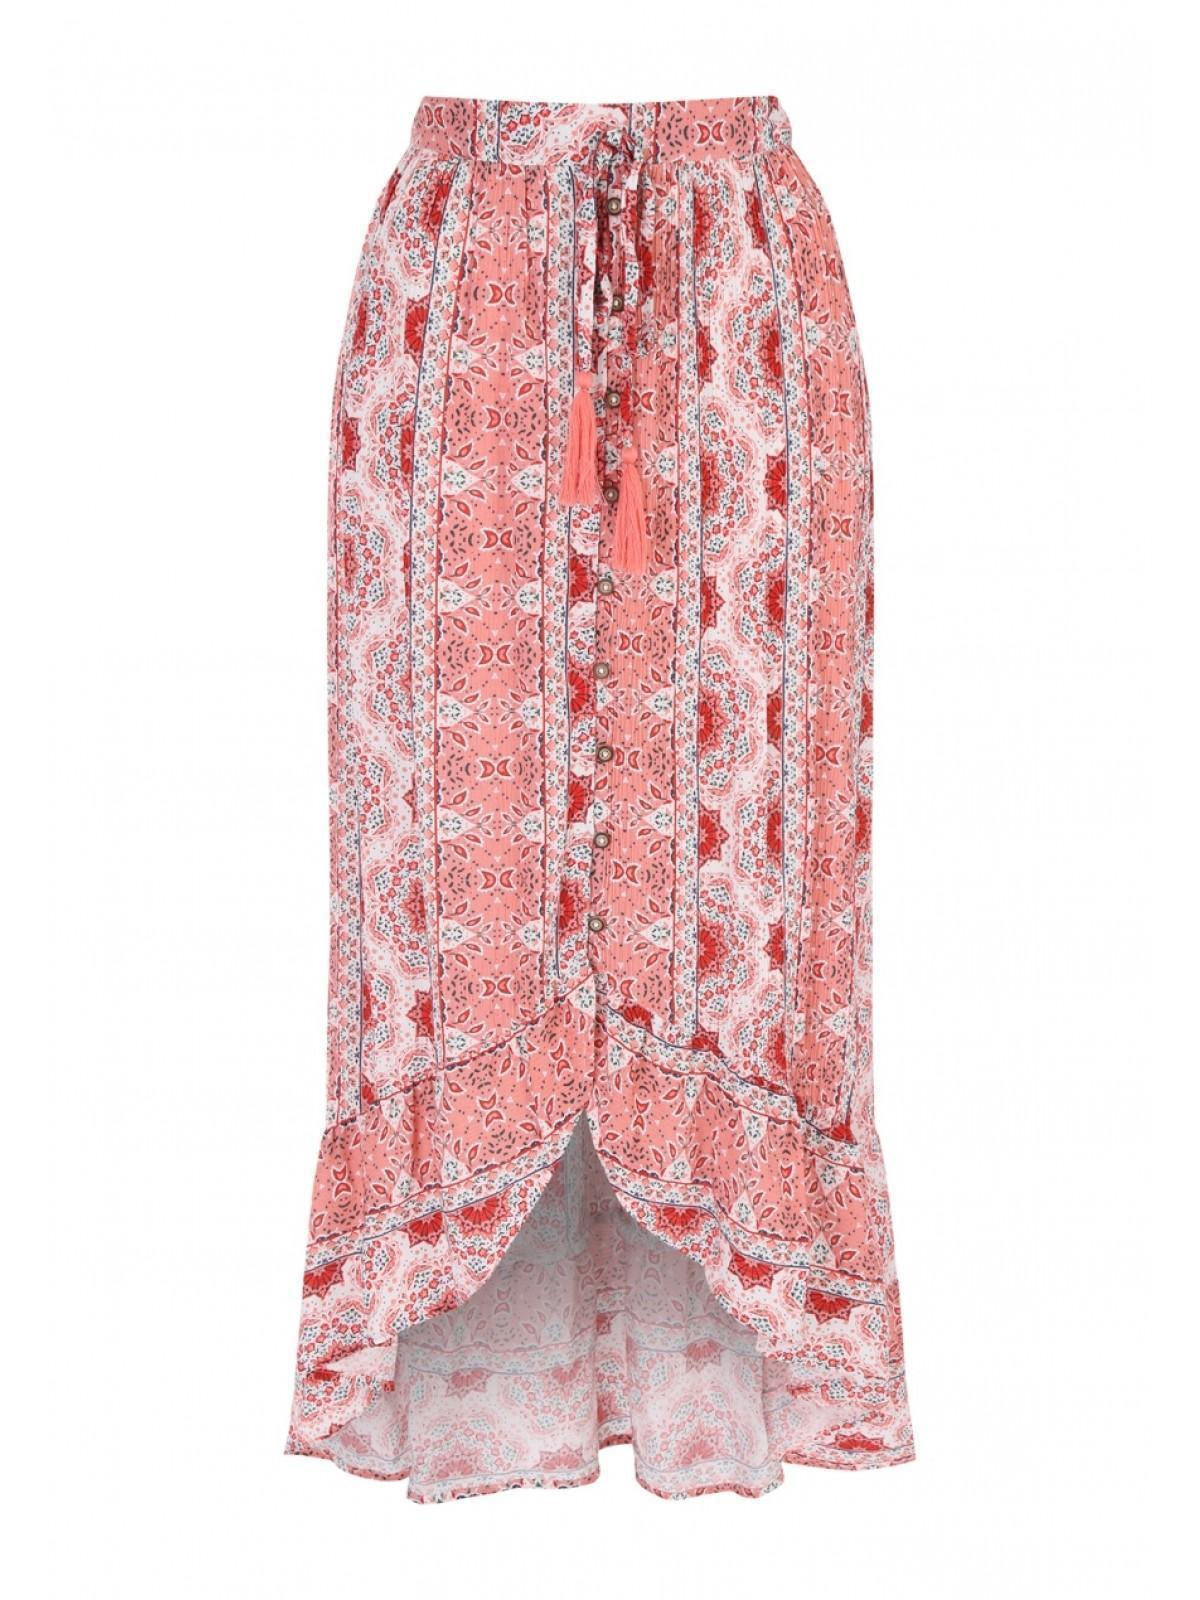 2dace80eef Home; Womens Orange Paisley Dipped Hem Skirt. Back. PreviousNext